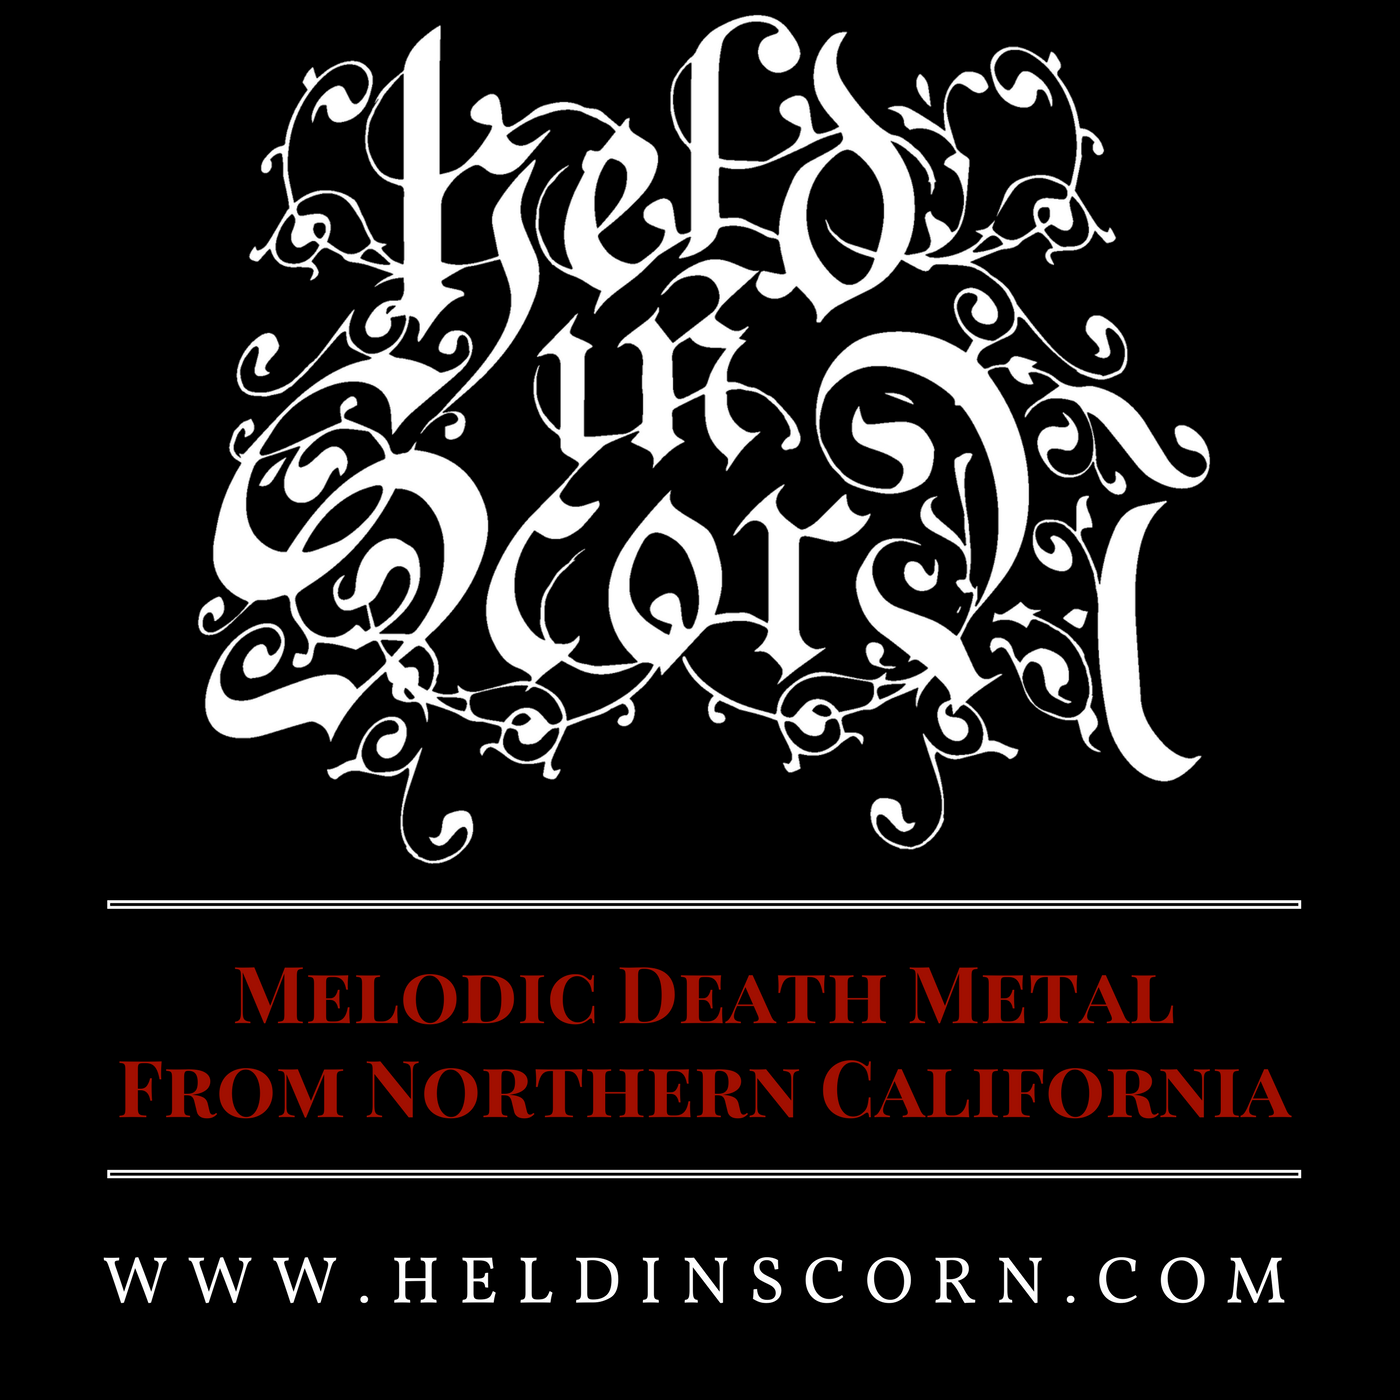 Held In Scorn Merch Logo